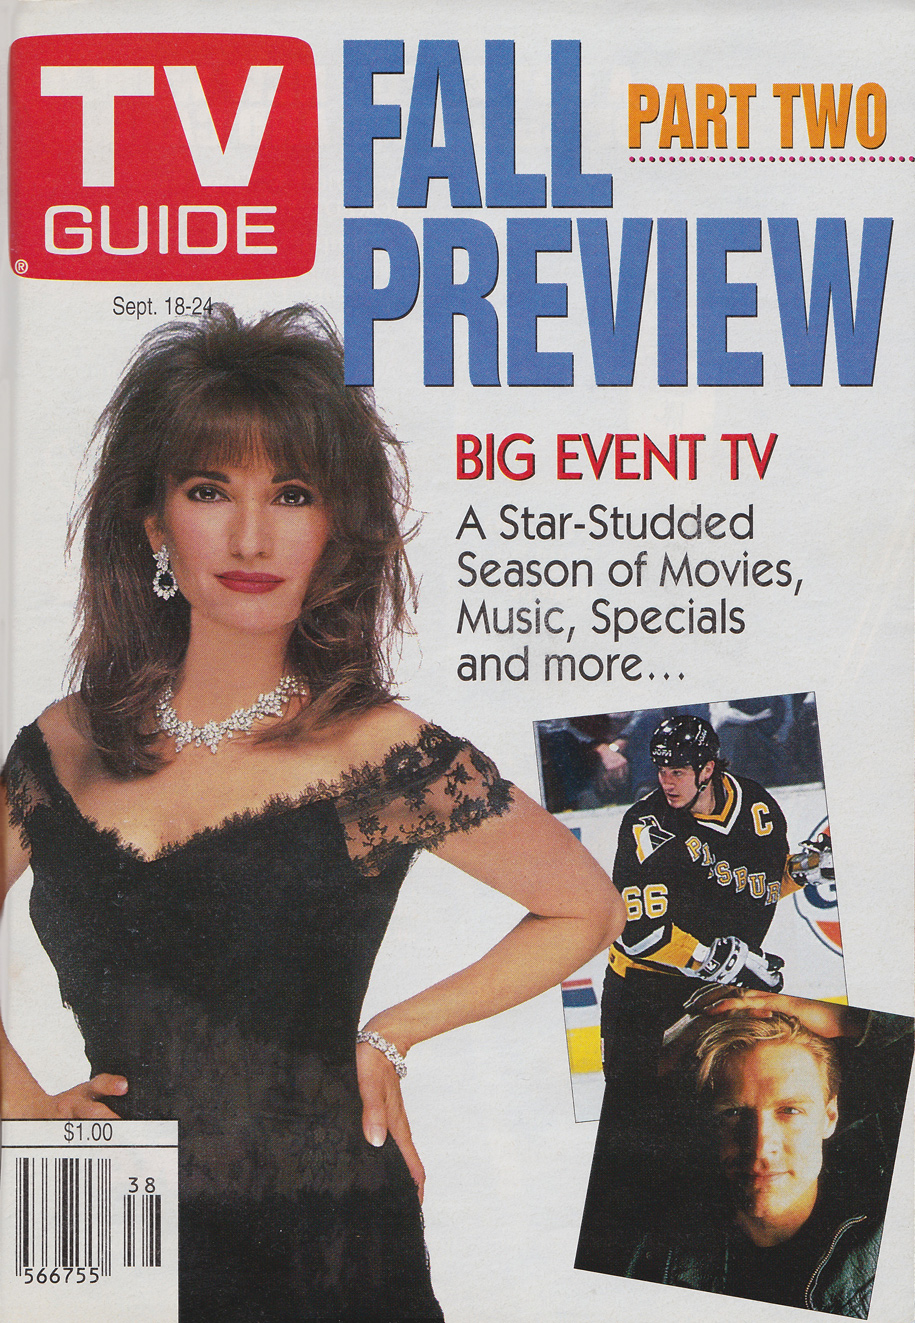 TV Guide September 18 1993 Western British Columbia Edition Front Cover